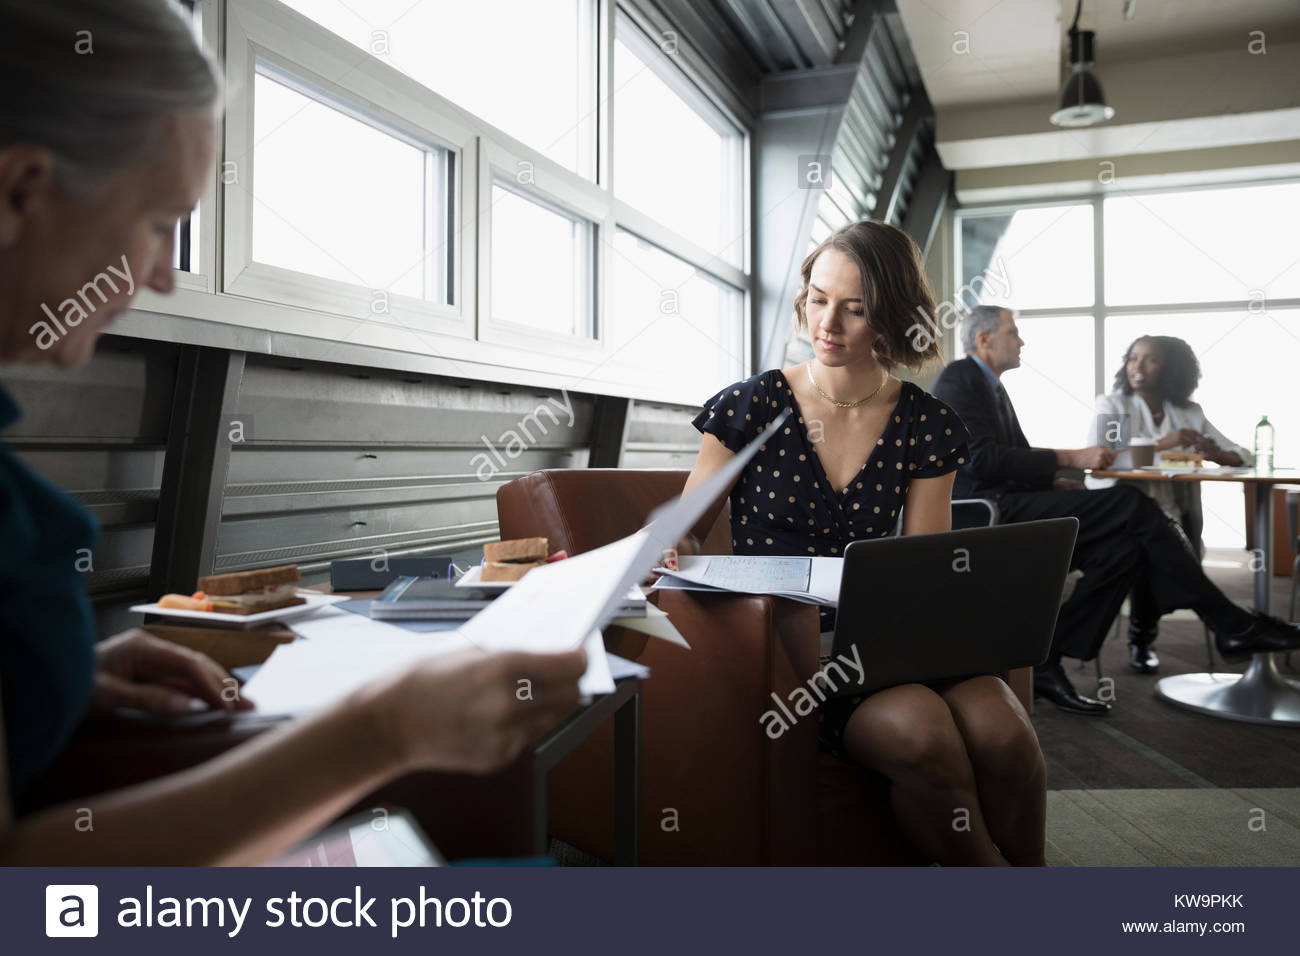 L'accent businesswoman reviewing paperwork at laptop in business lounge Photo Stock